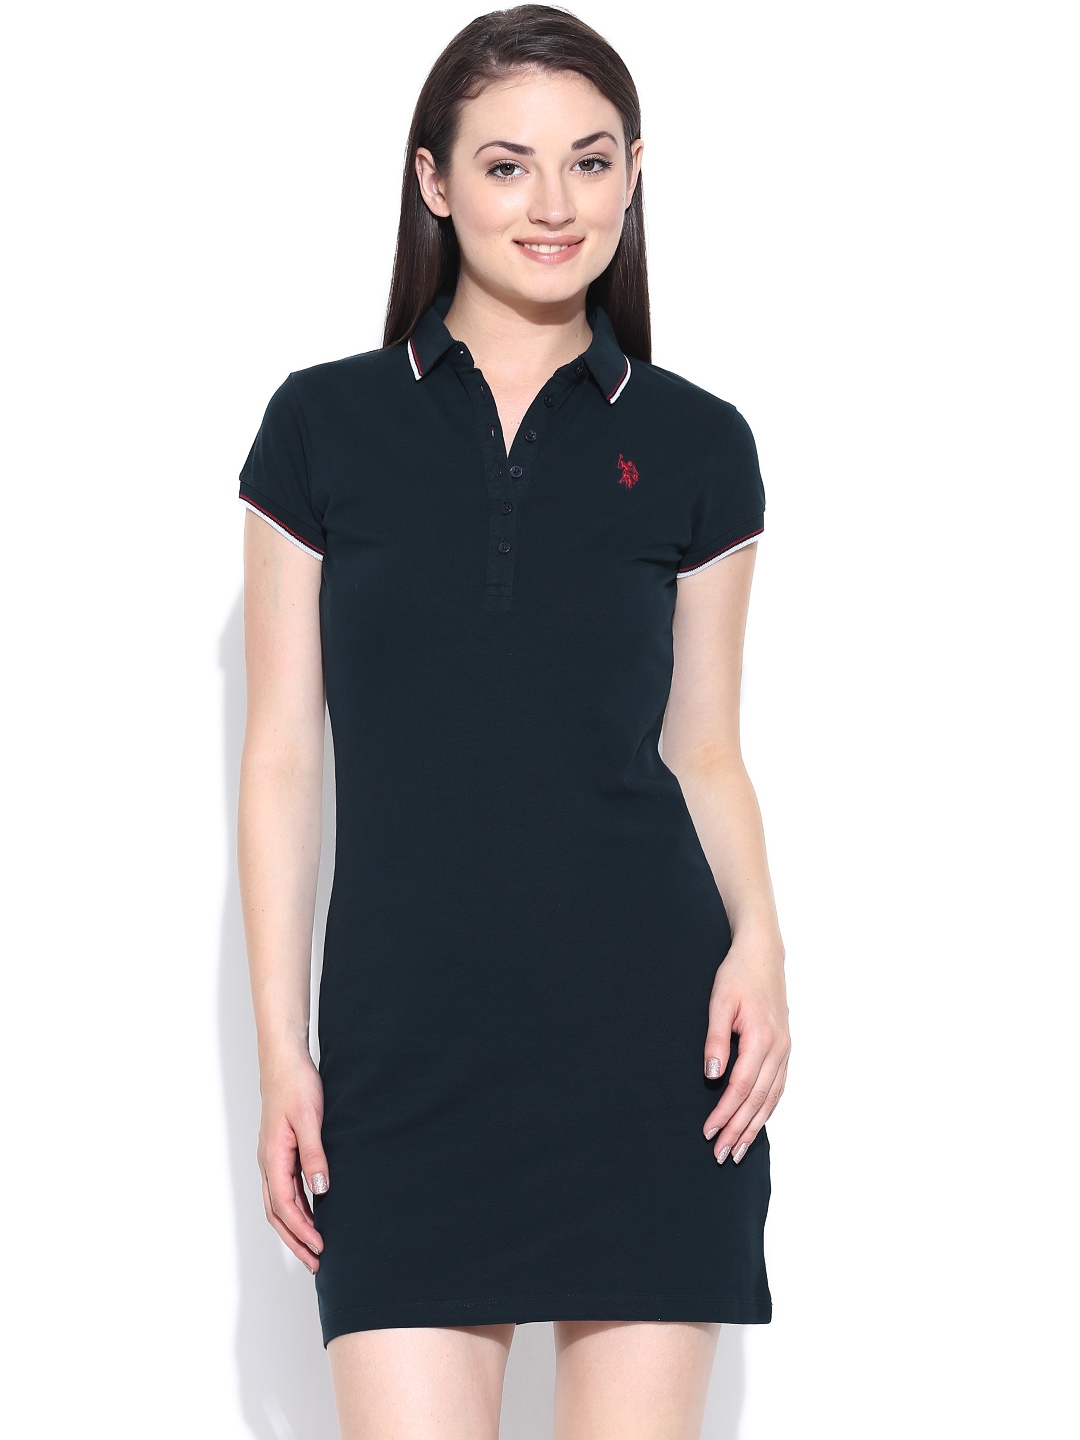 H M Polo Shirt Womens